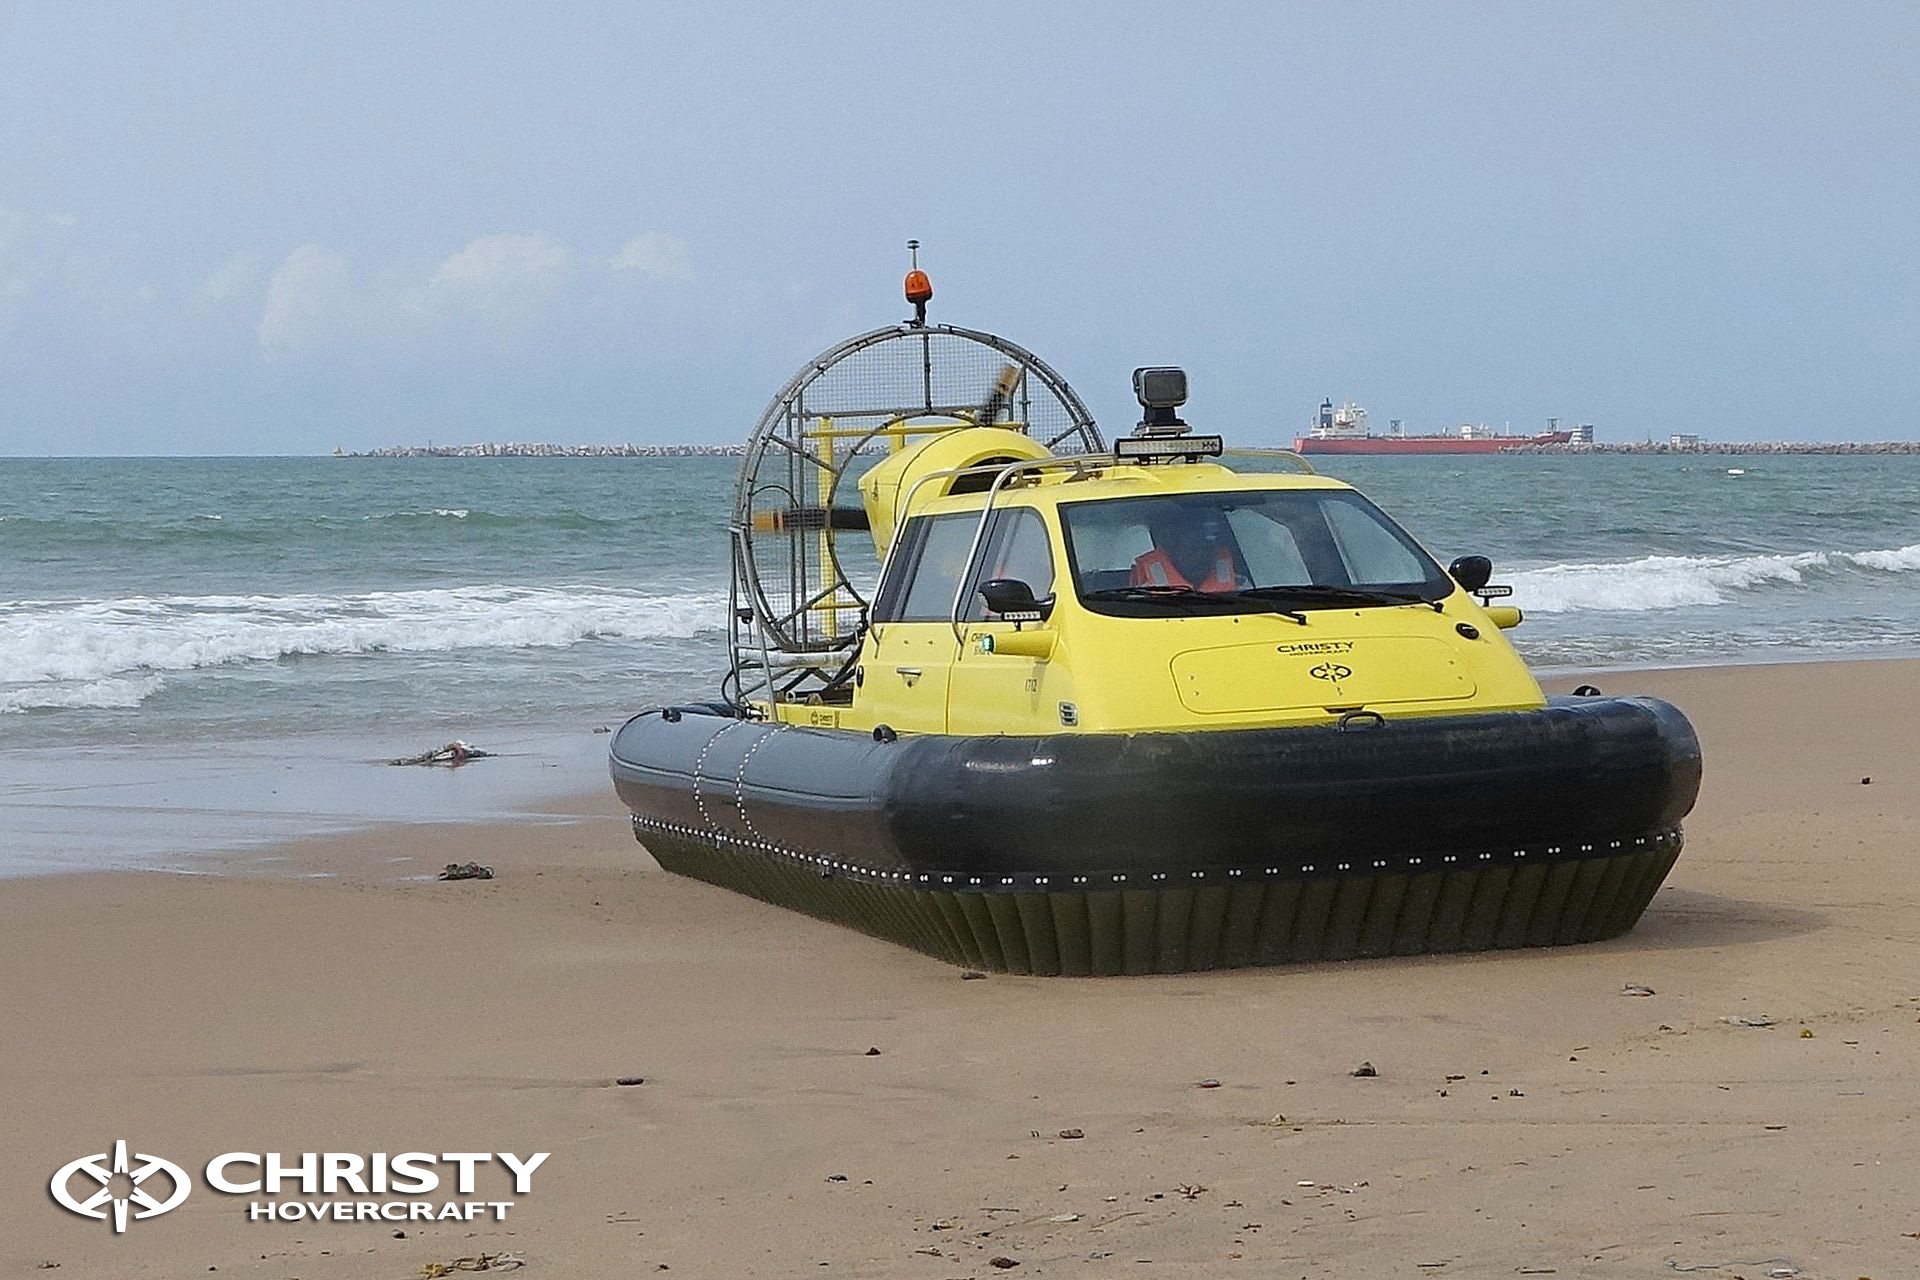 hovercraft-christy-5_7series-32.jpg | фото №23